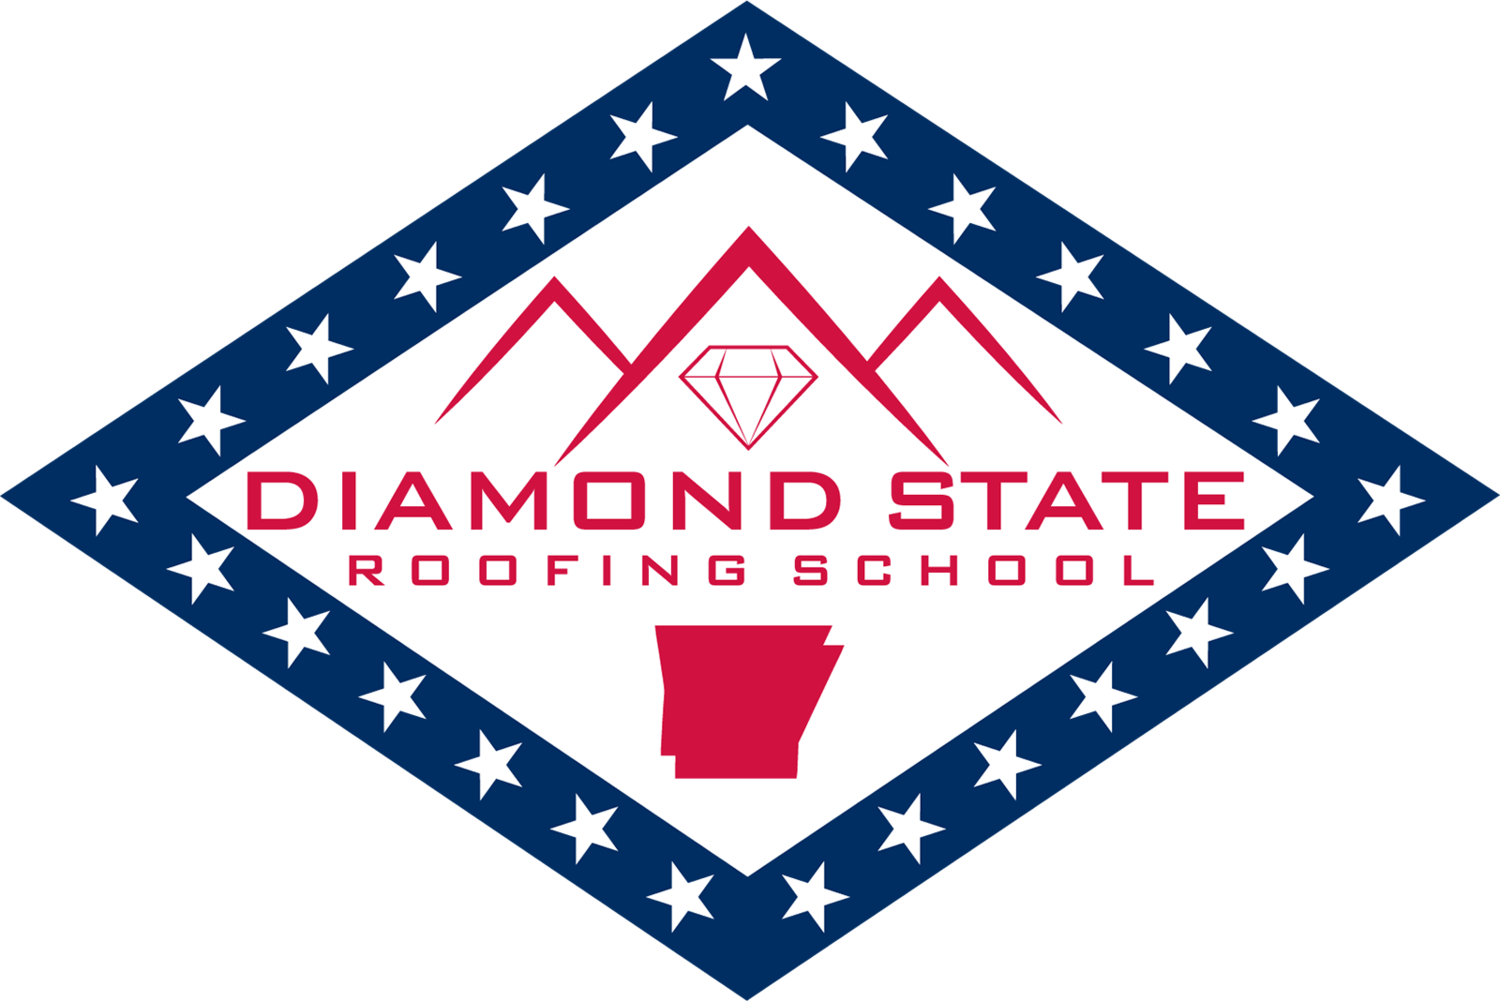 Diamond State Roofing School